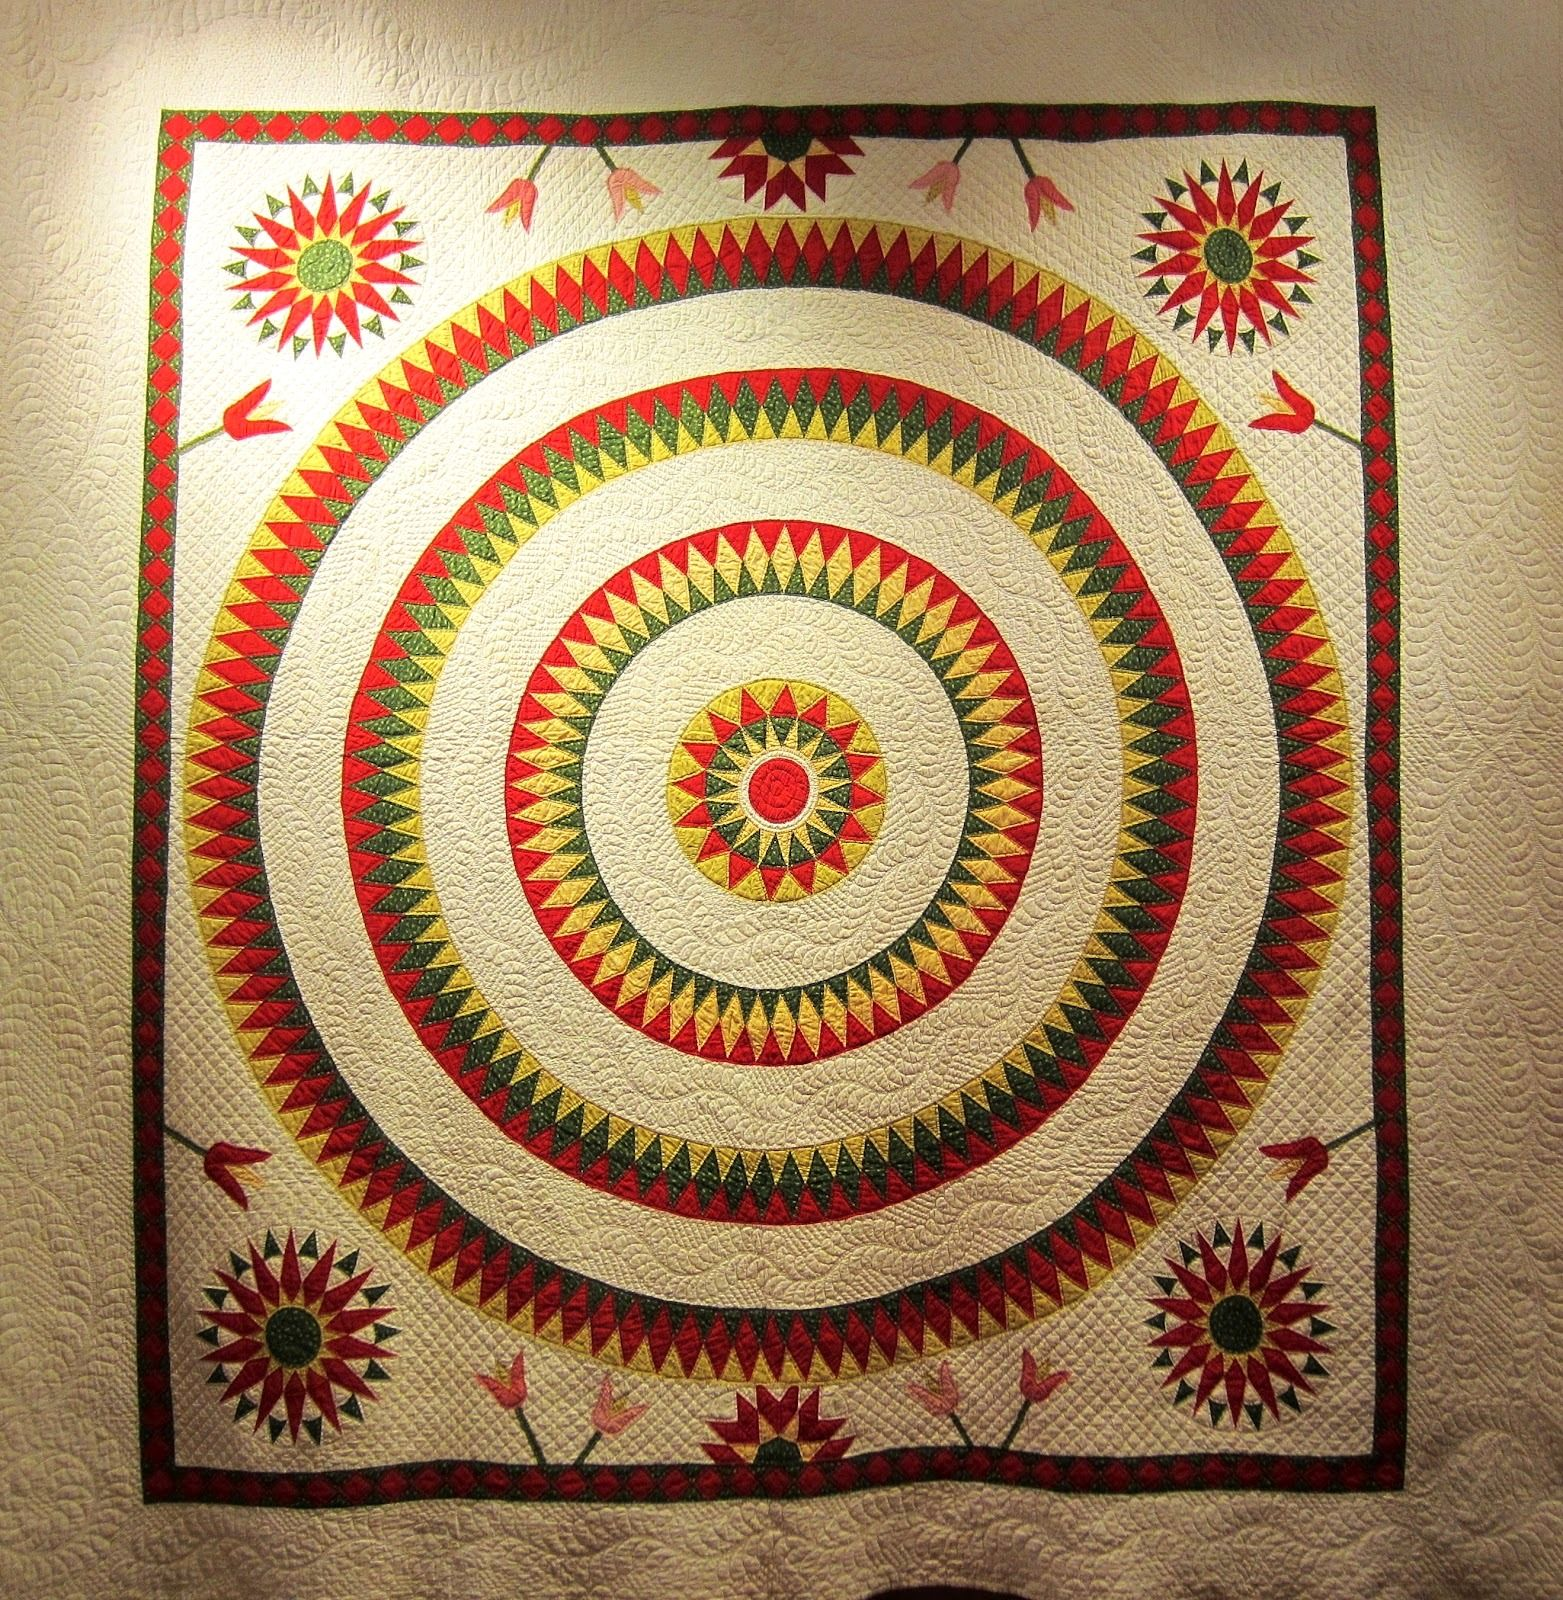 Bulls eye quilt with Mariner's Compass, c. 1860, photographed at ... : rocky mountain quilt museum - Adamdwight.com